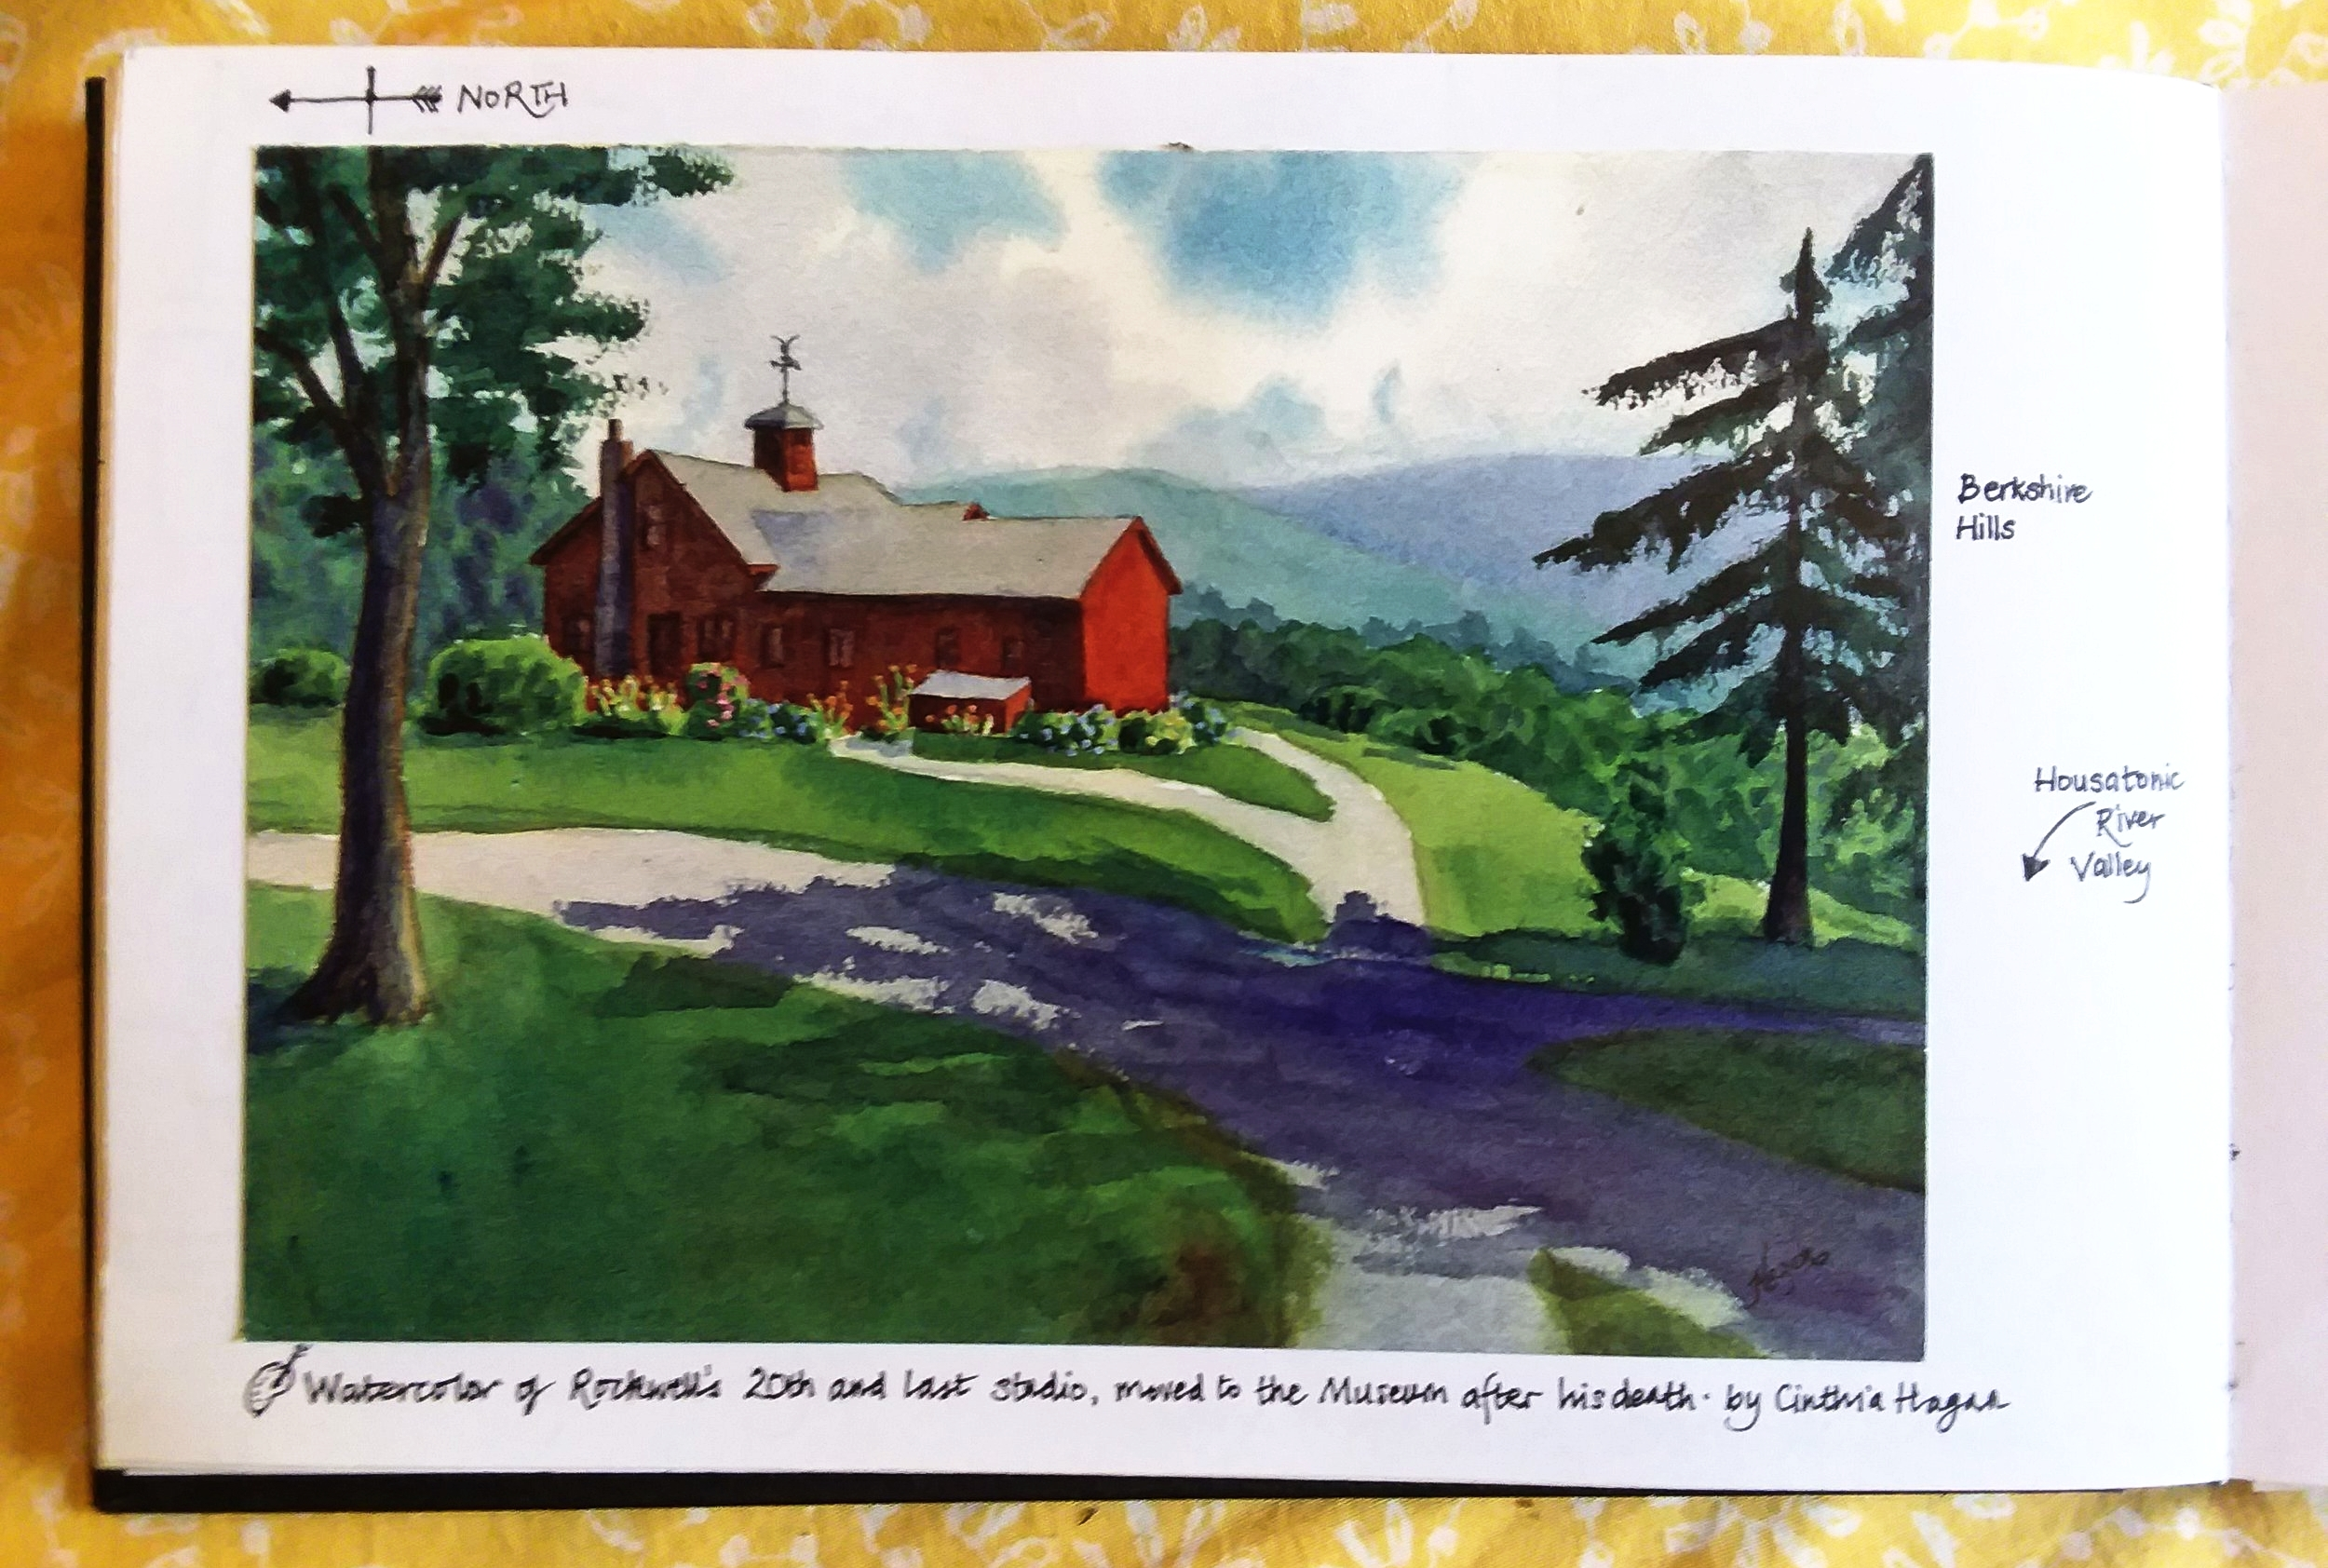 Purchased postcards can quickly fill your sketchbook with color and a fresh view.  Watercolor by local artist Gina Hagan, my notes added around the edge.